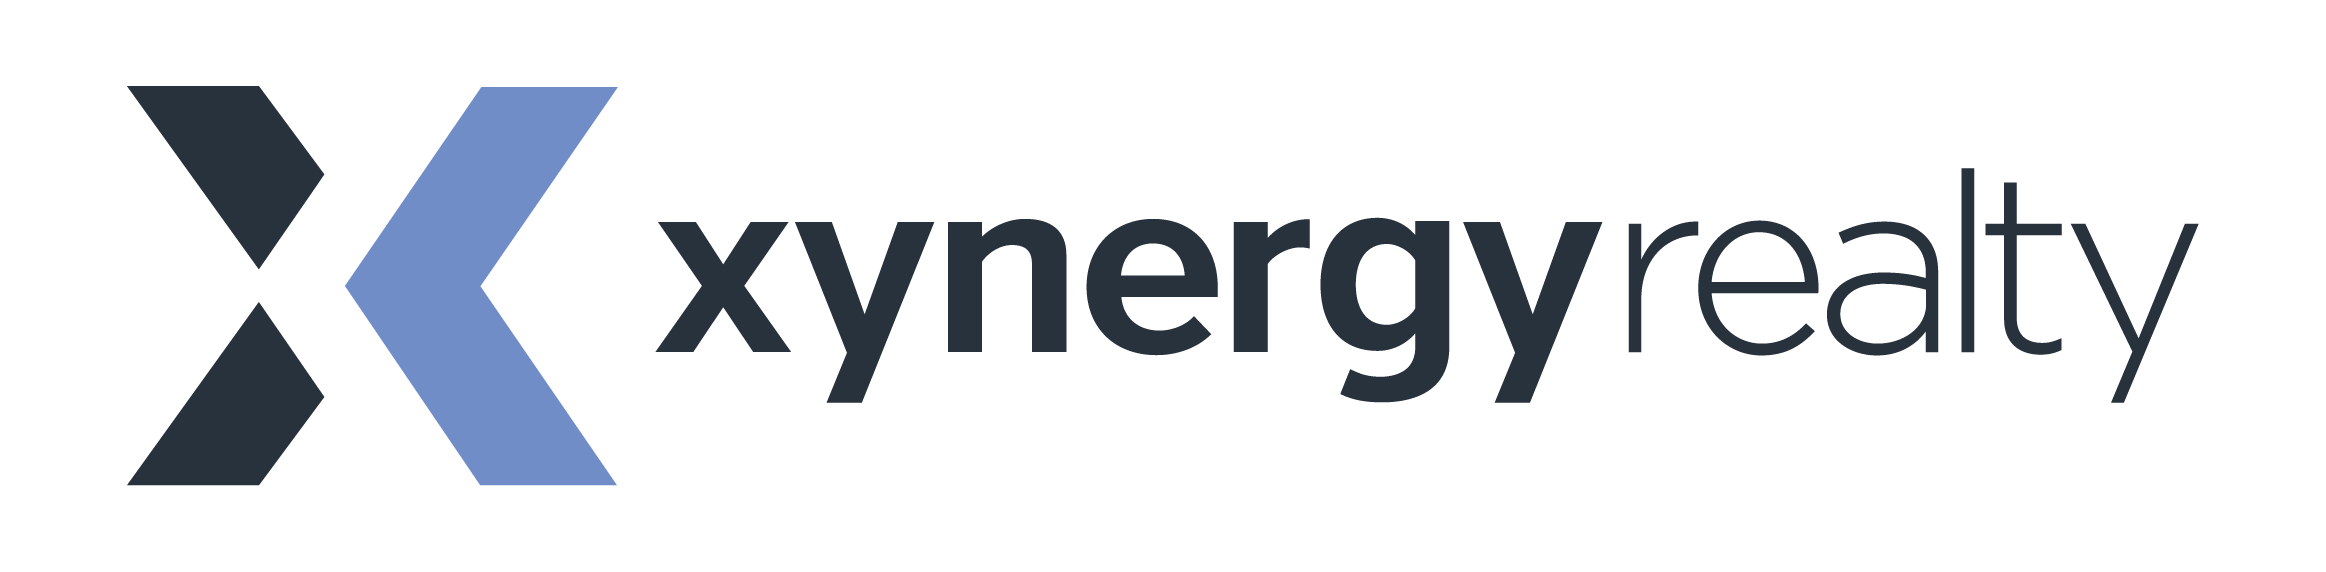 Xynergy Realty